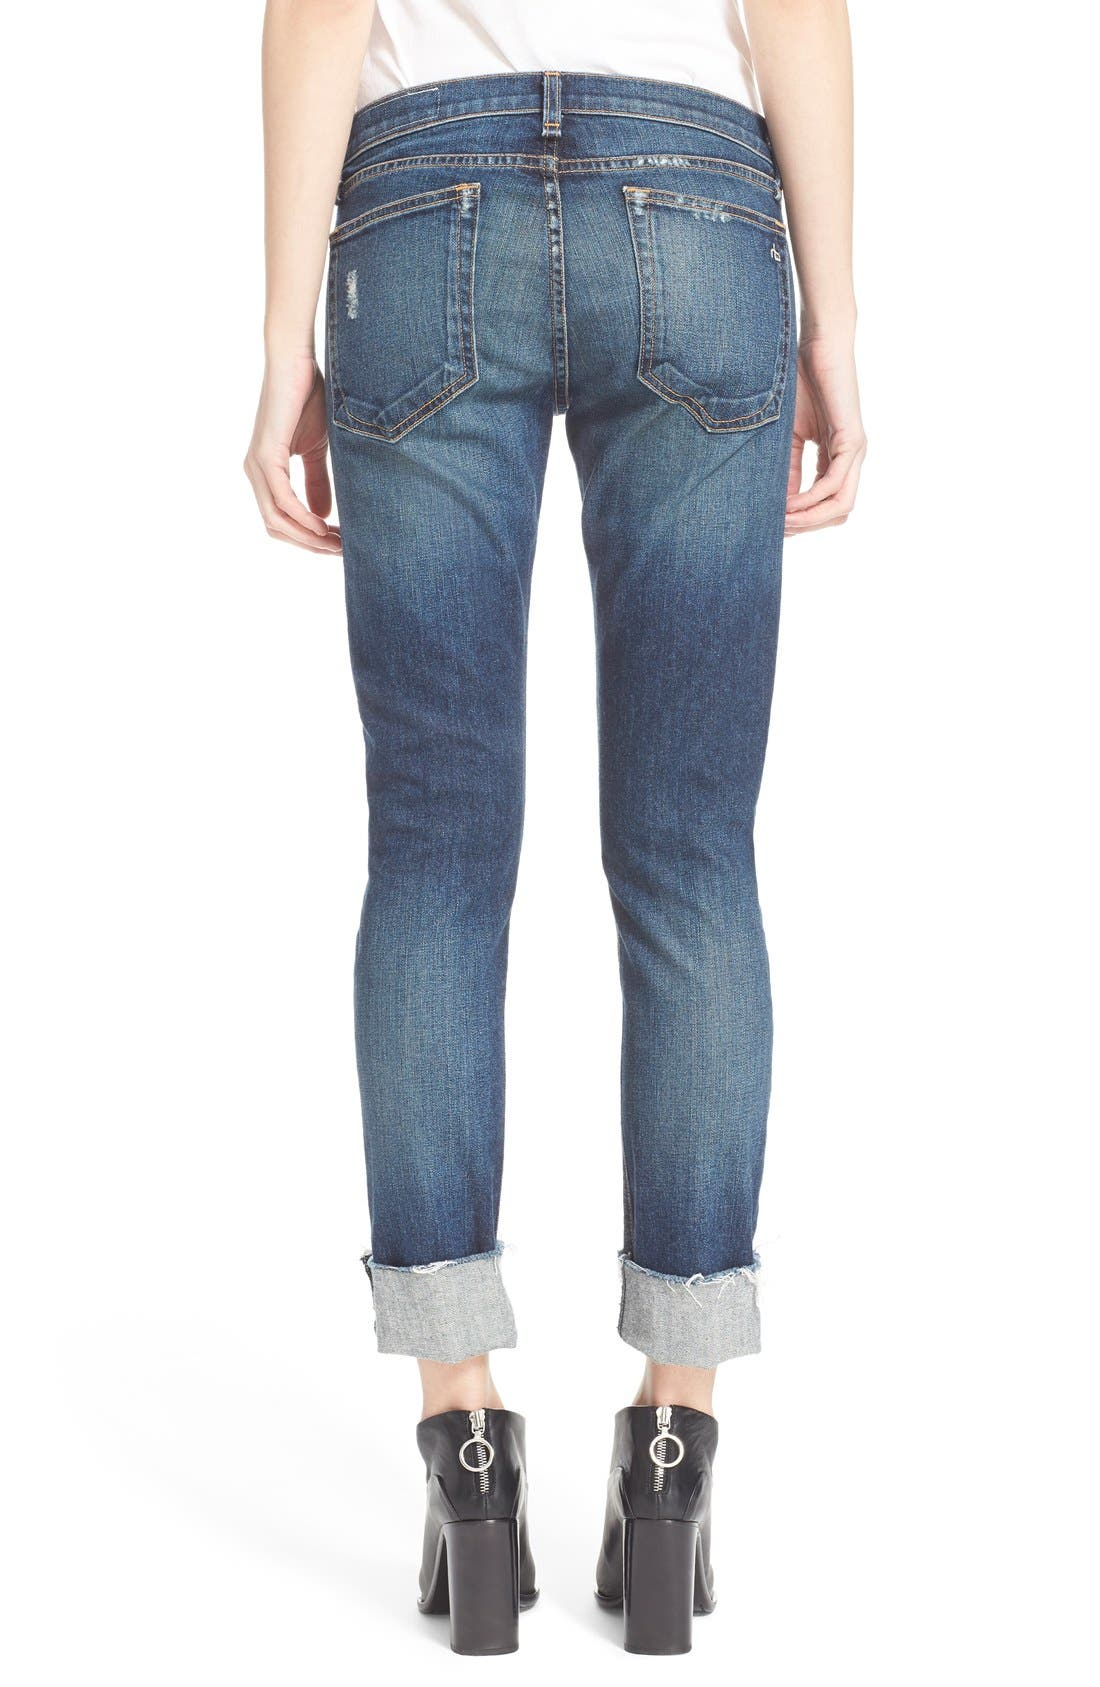 'The Dre' Slim Fit Boyfriend Jeans,                             Alternate thumbnail 2, color,                             472